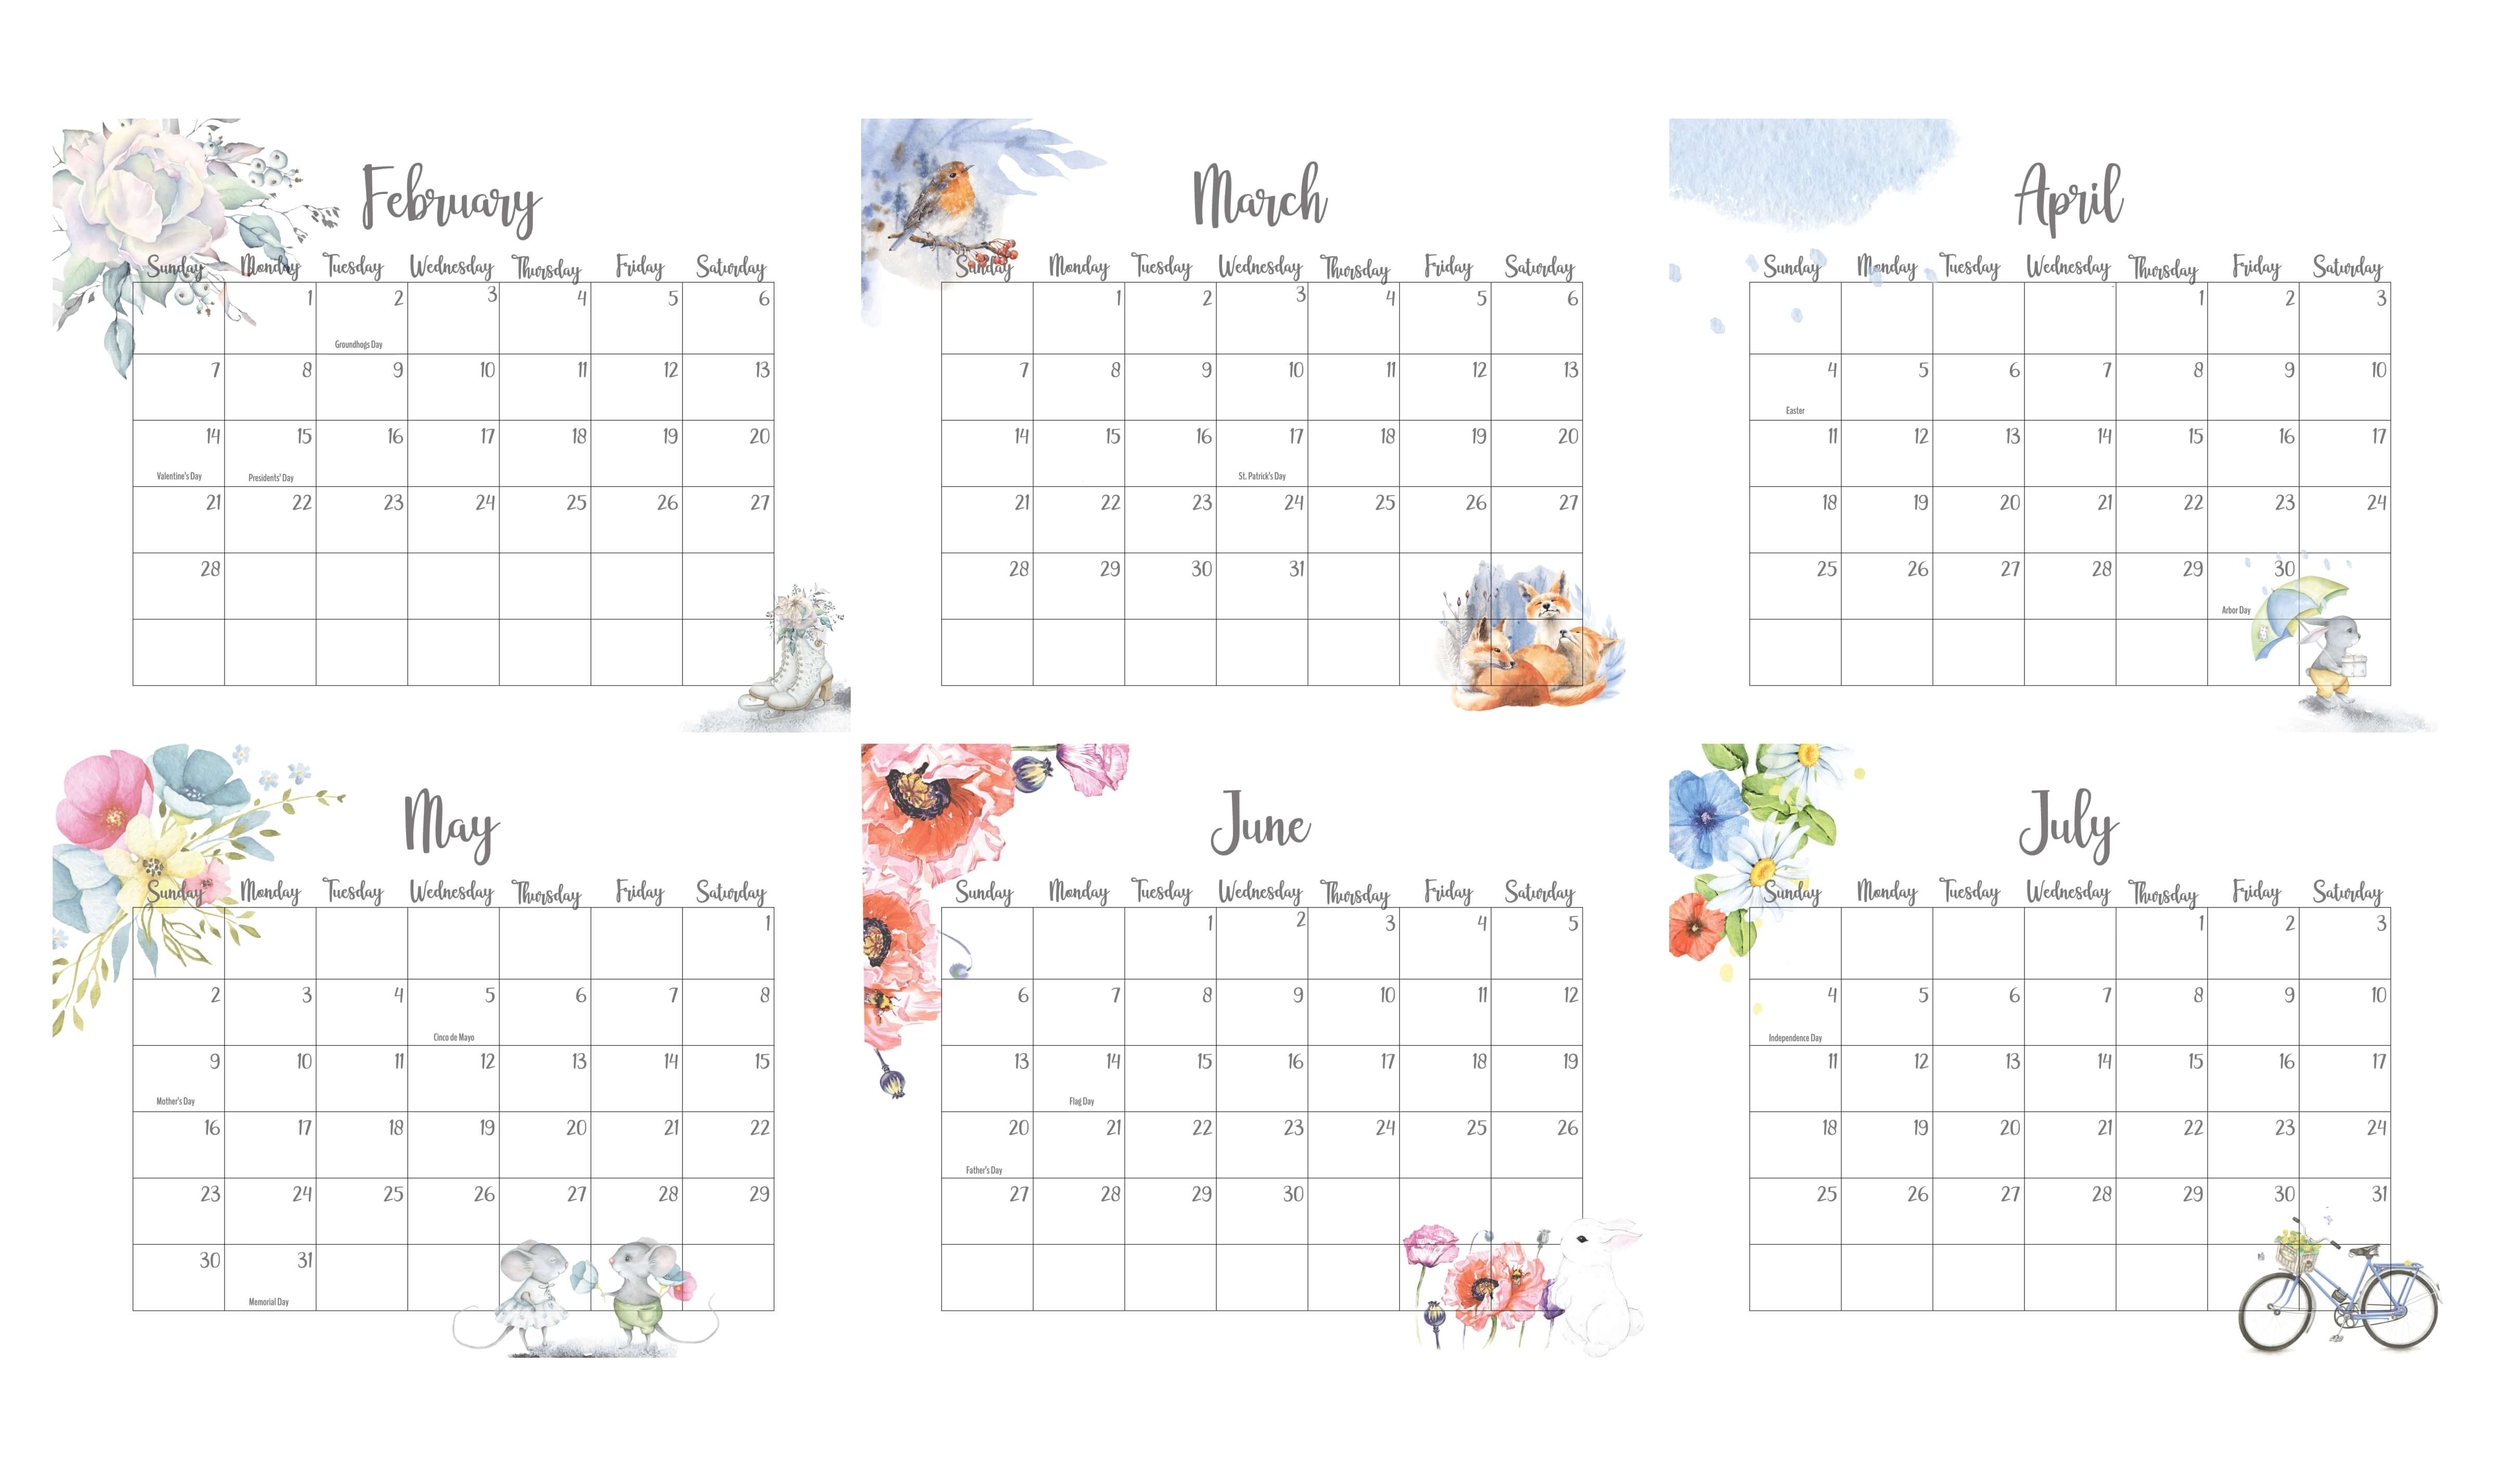 February To July 2021 Calendar With Holidays